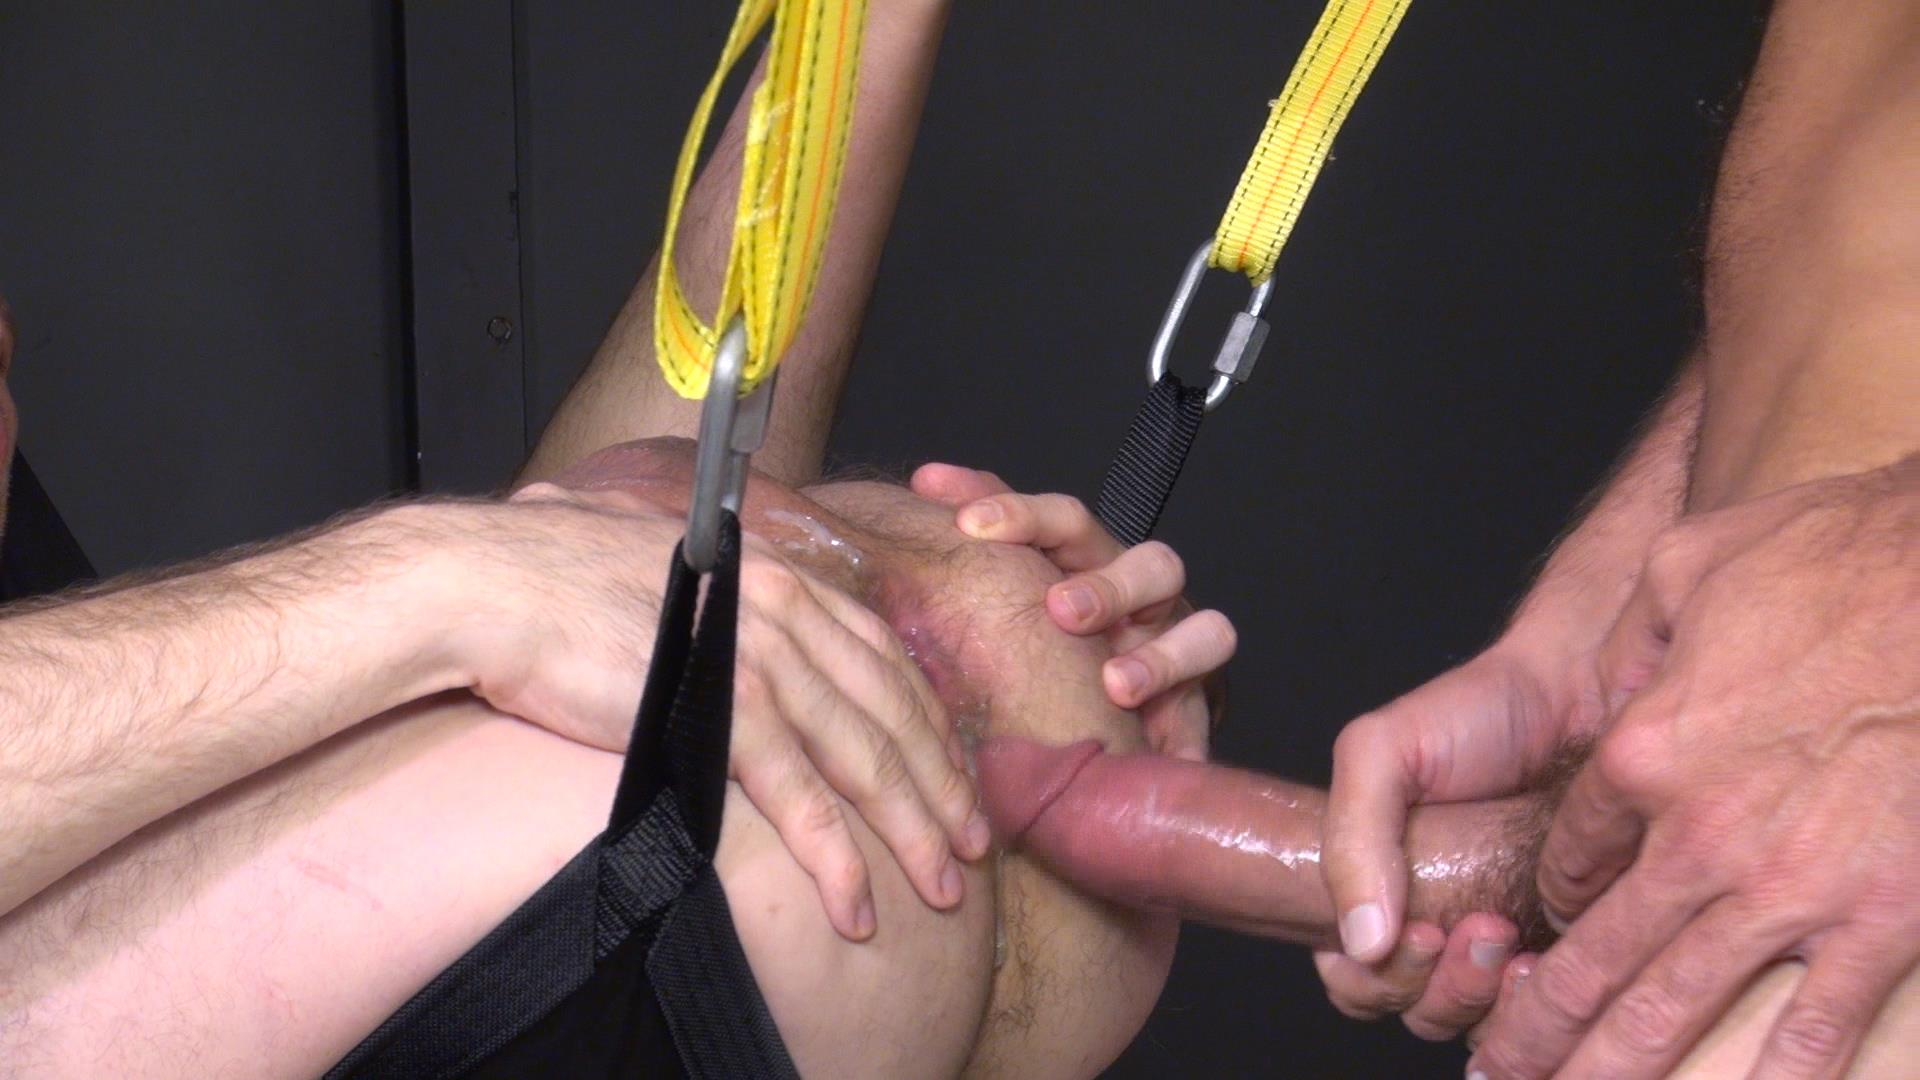 Raw and Rough Blake Dawson and Super Steve Horse Cock Bareback Breeding Amateur Gay Porn 01 Huge Cock Bareback Breeding A Tight Hole In A Sex Sling